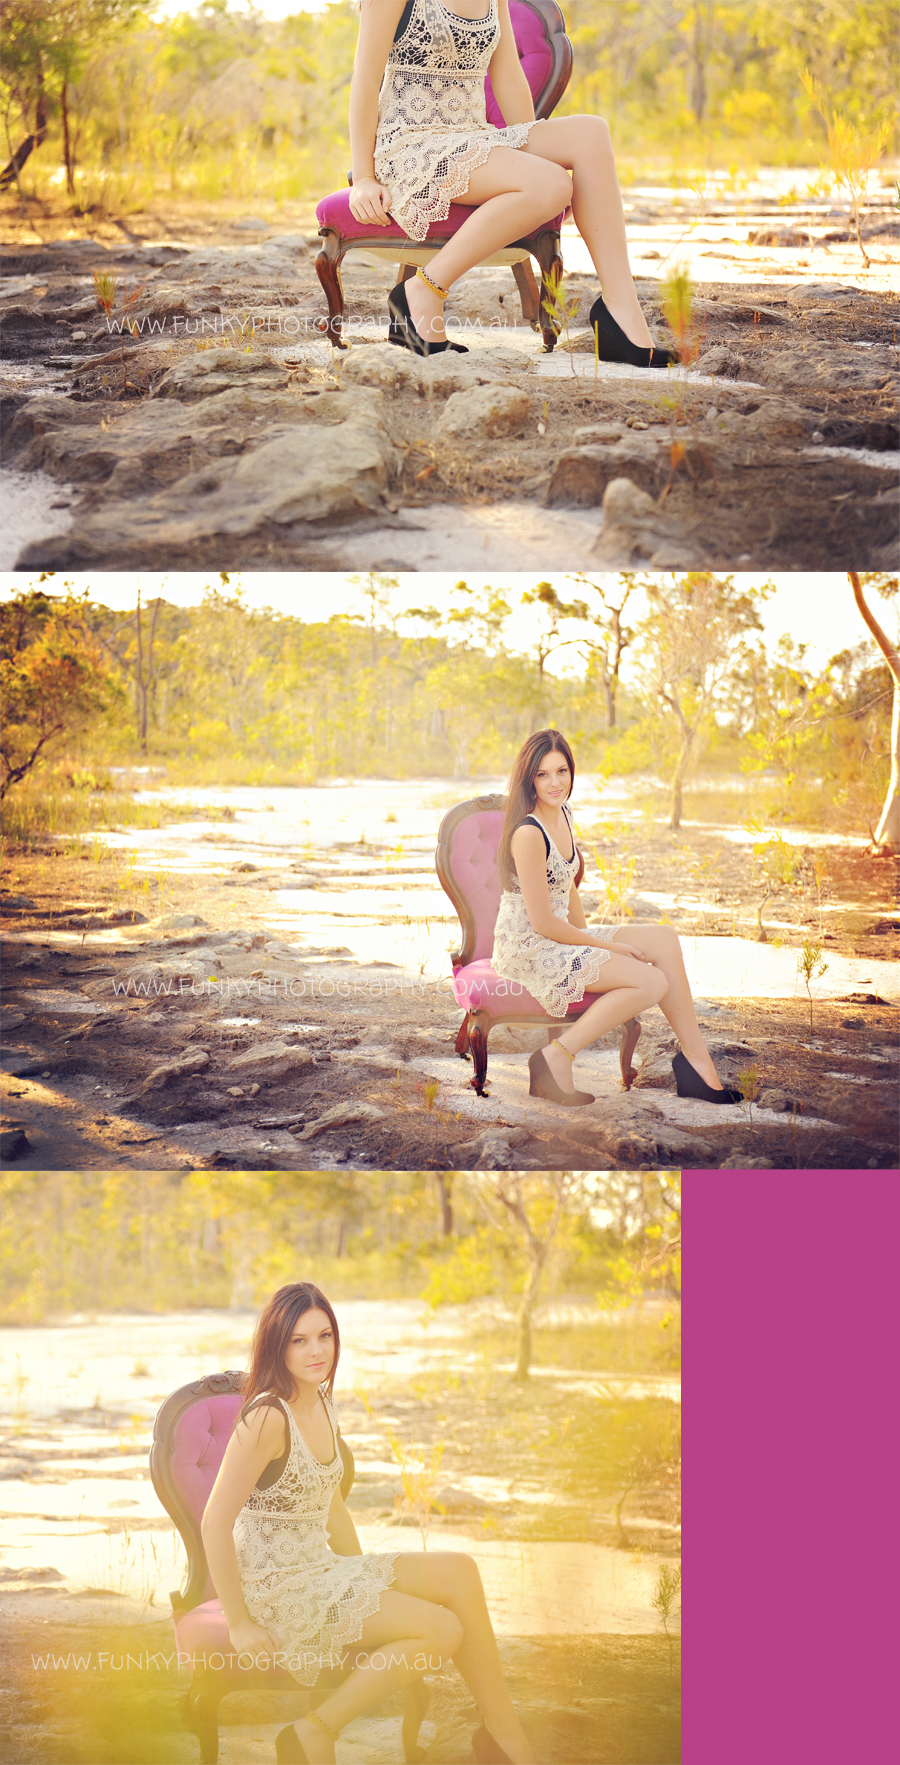 girl sitting on a chair in a field, backlighting